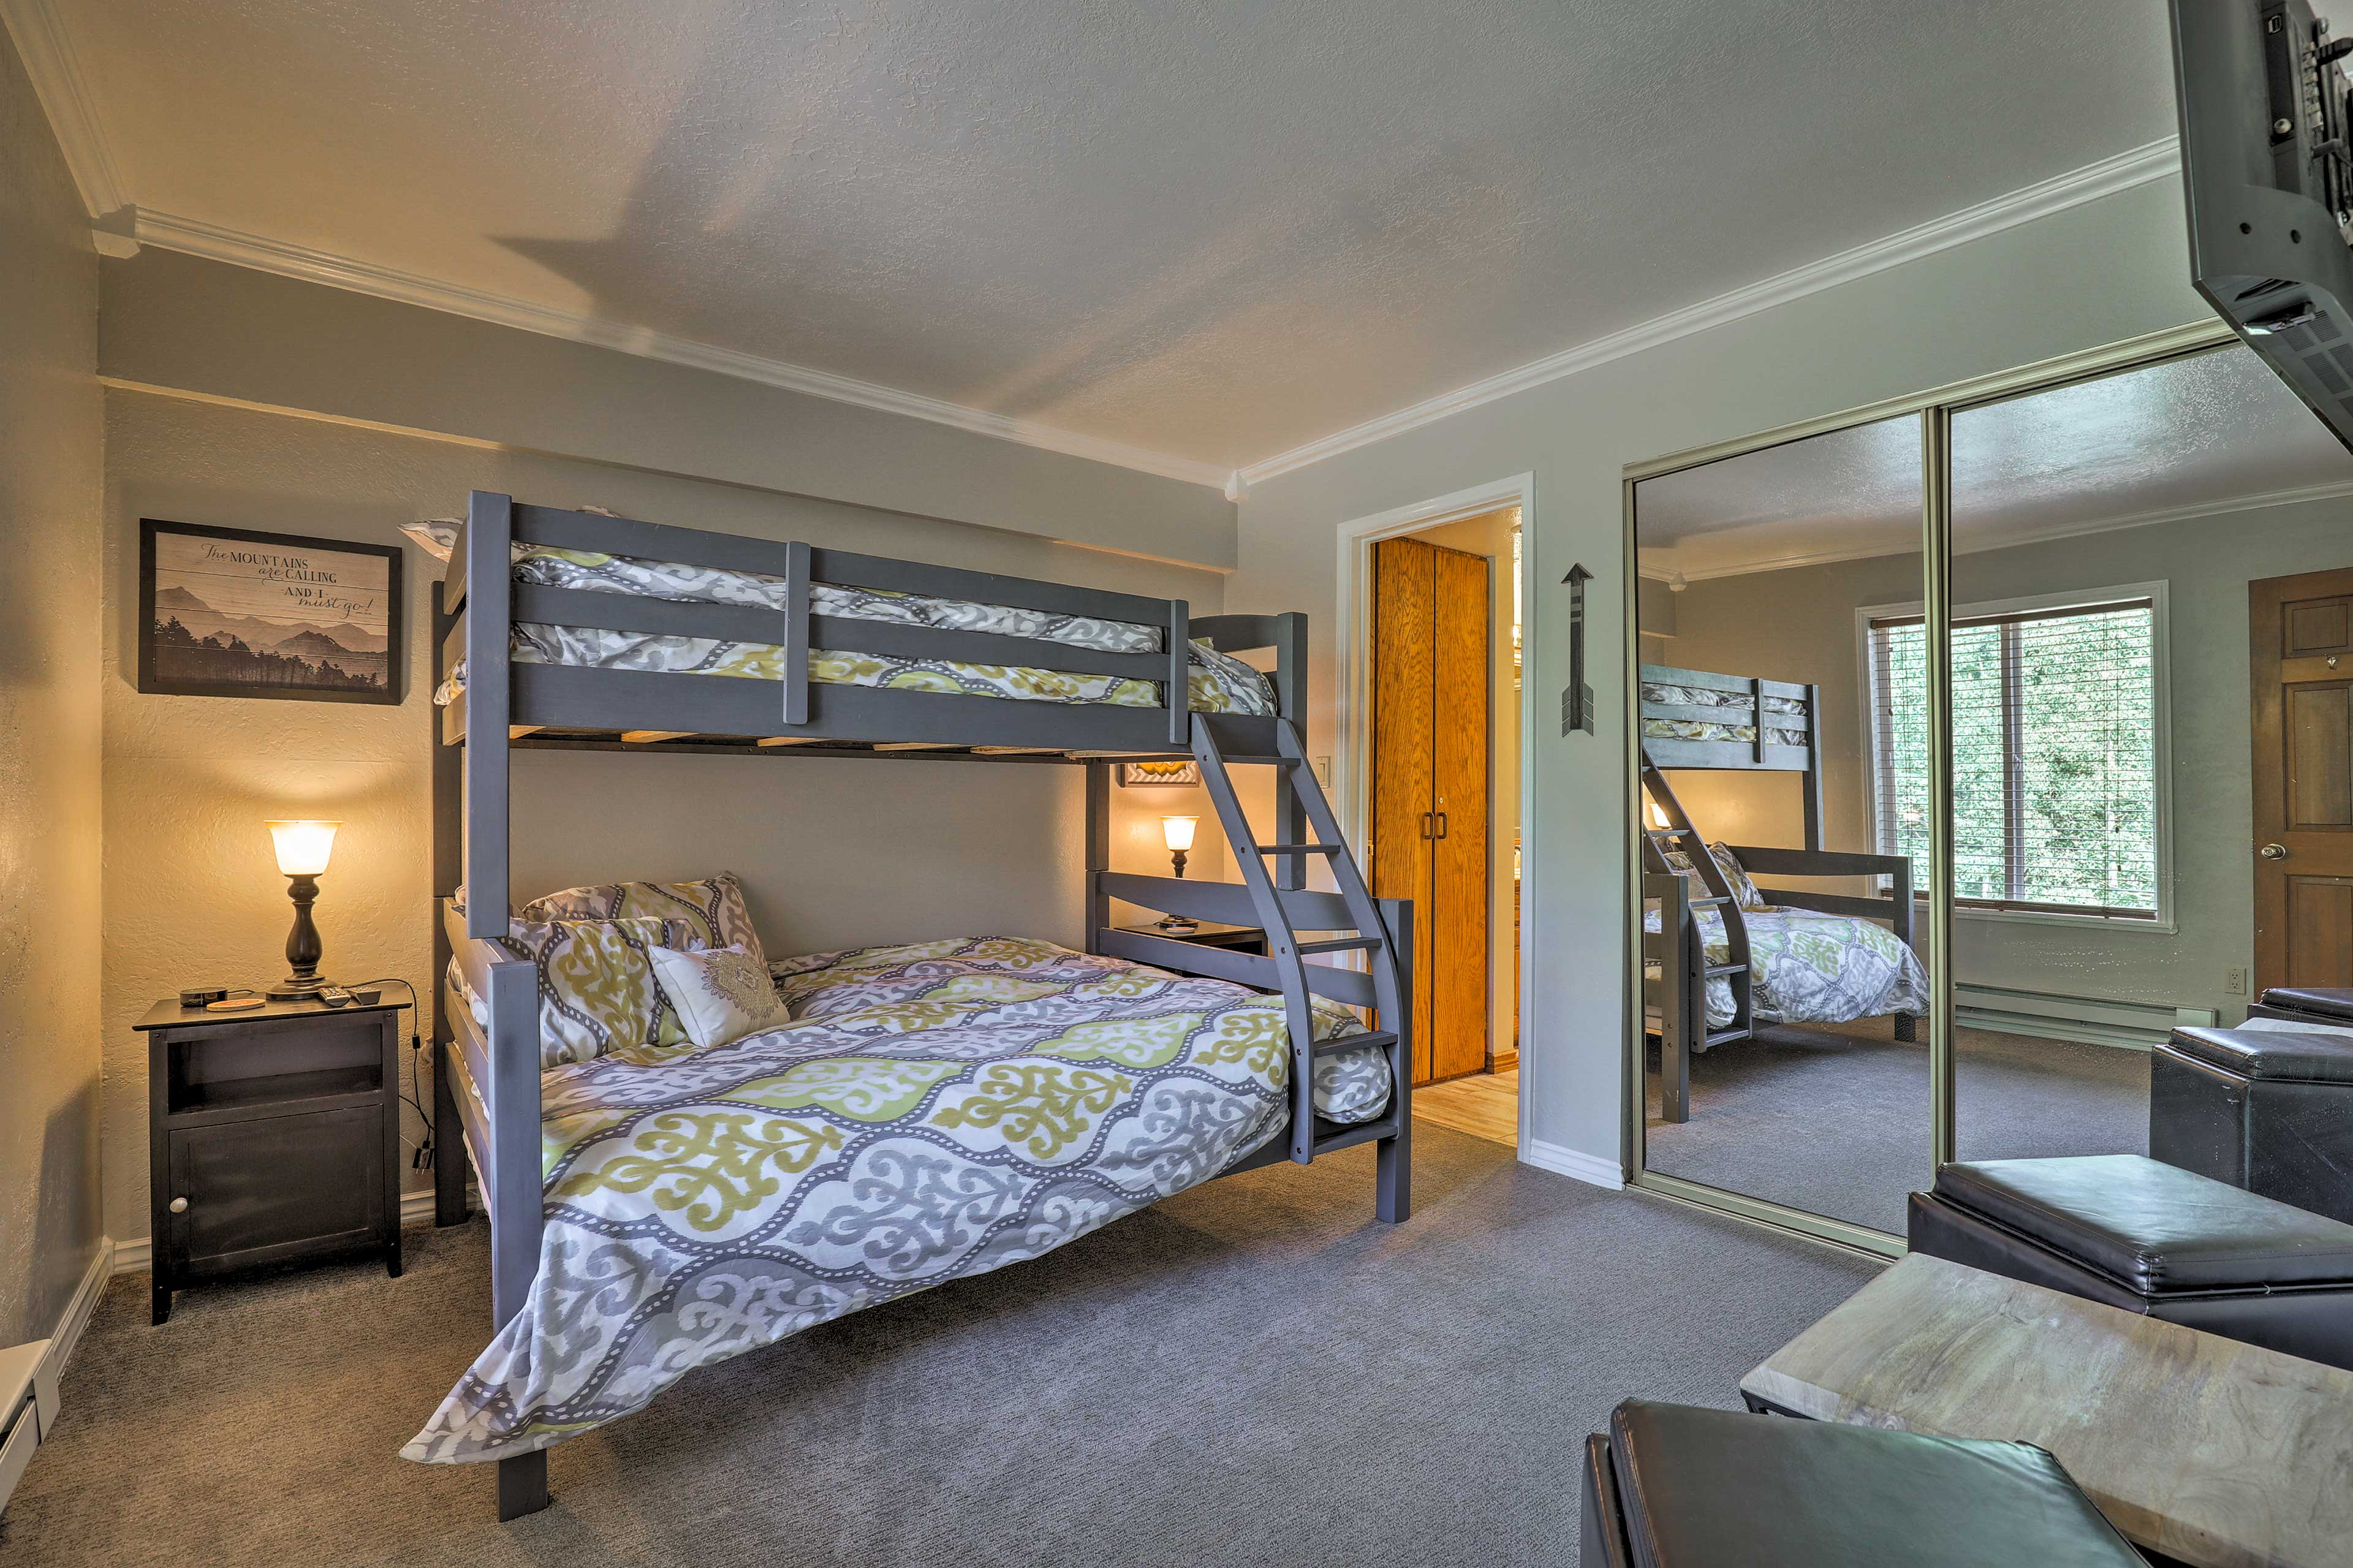 Kids will love the twin-over-full bunk bed and flat-screen TV in this room.